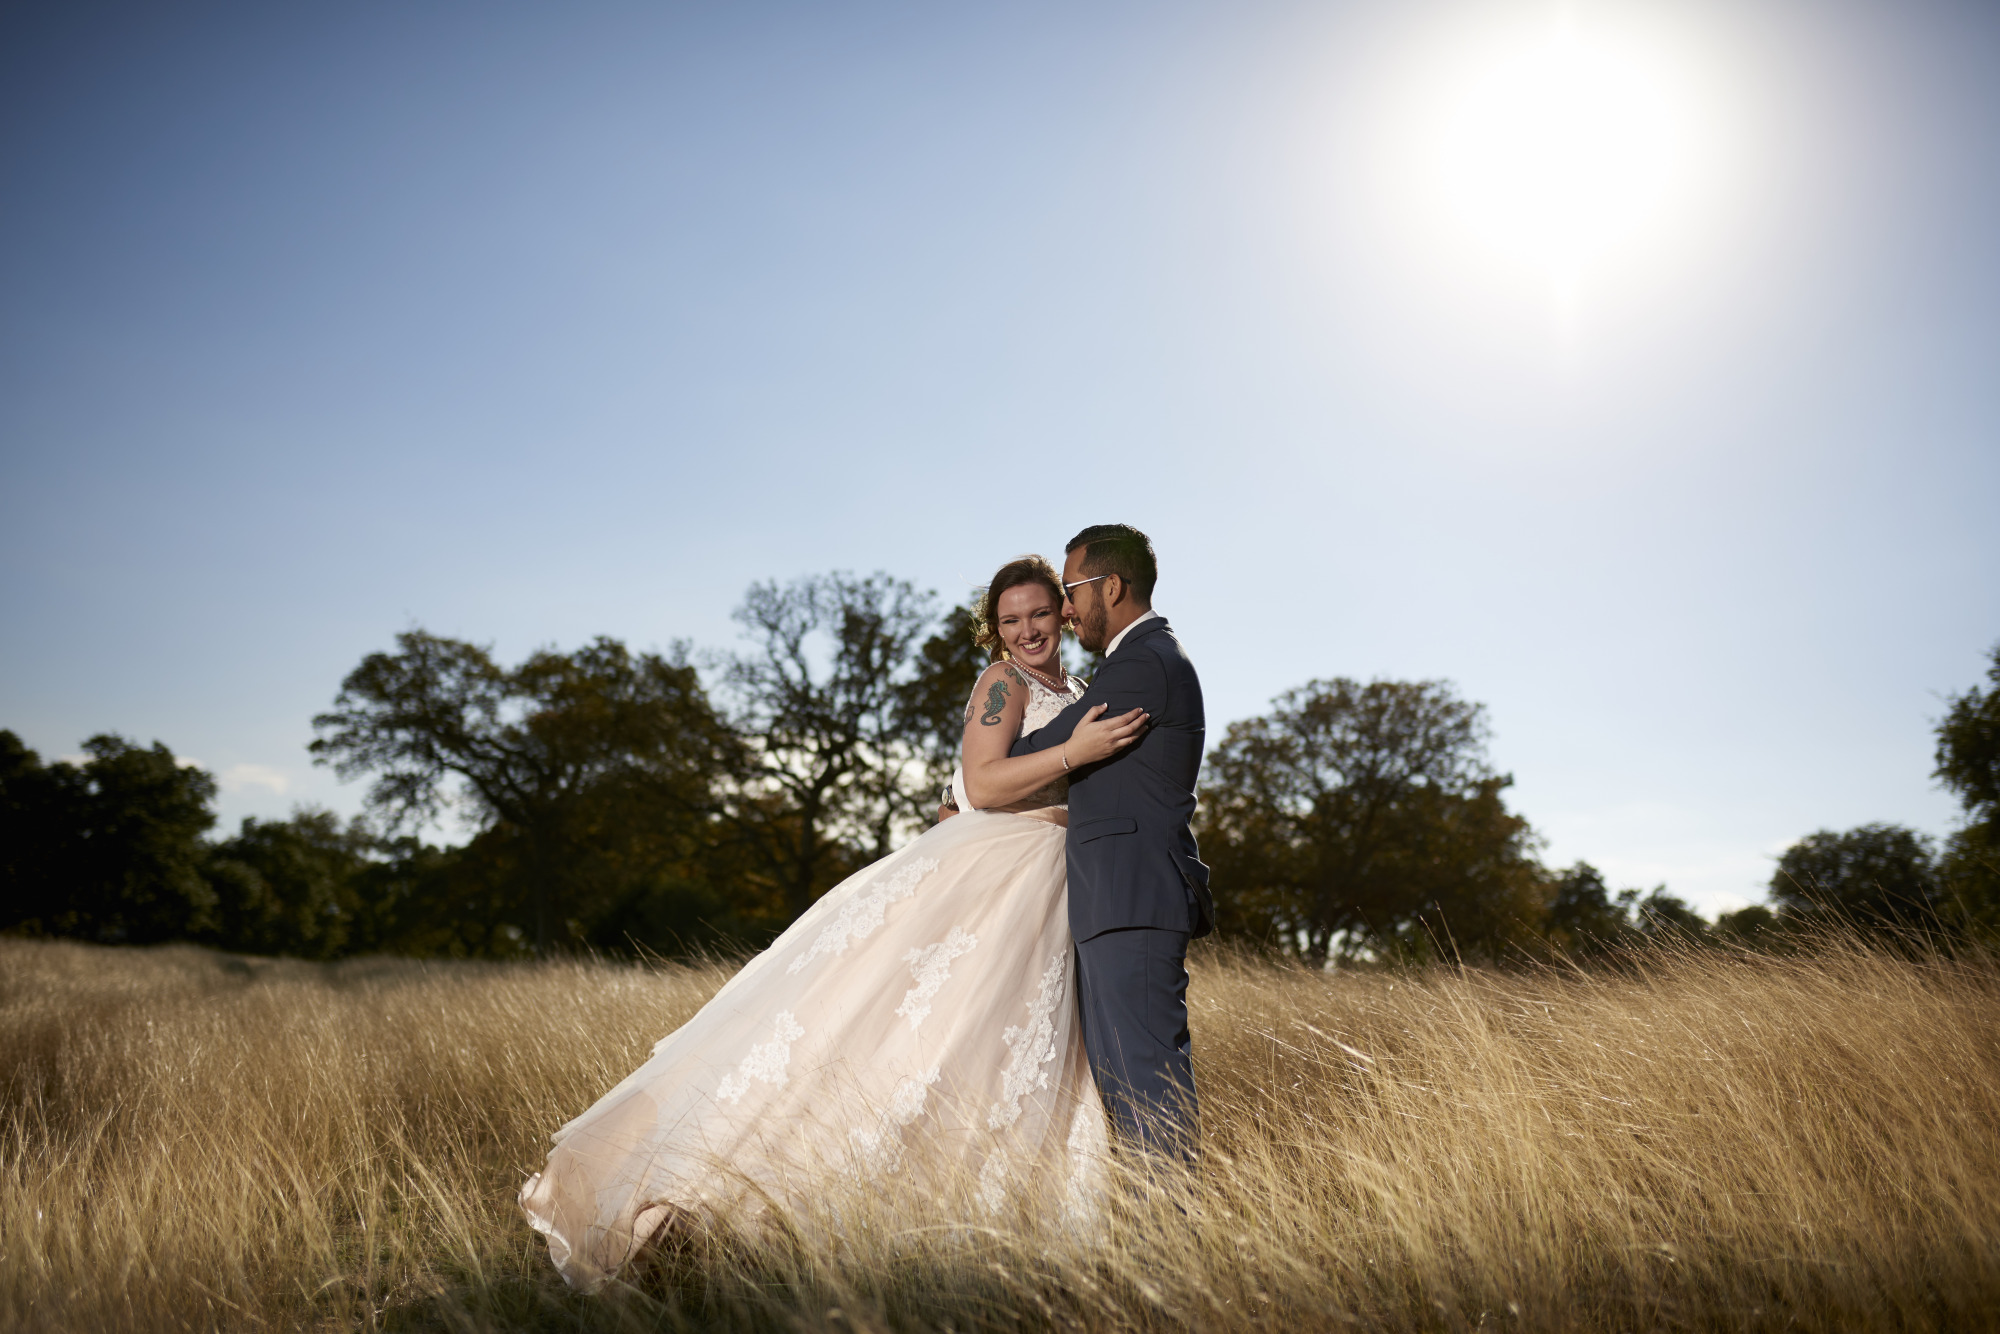 Epic Frist Look Portrait, Wedding, Memory Lane, Dripping Springs